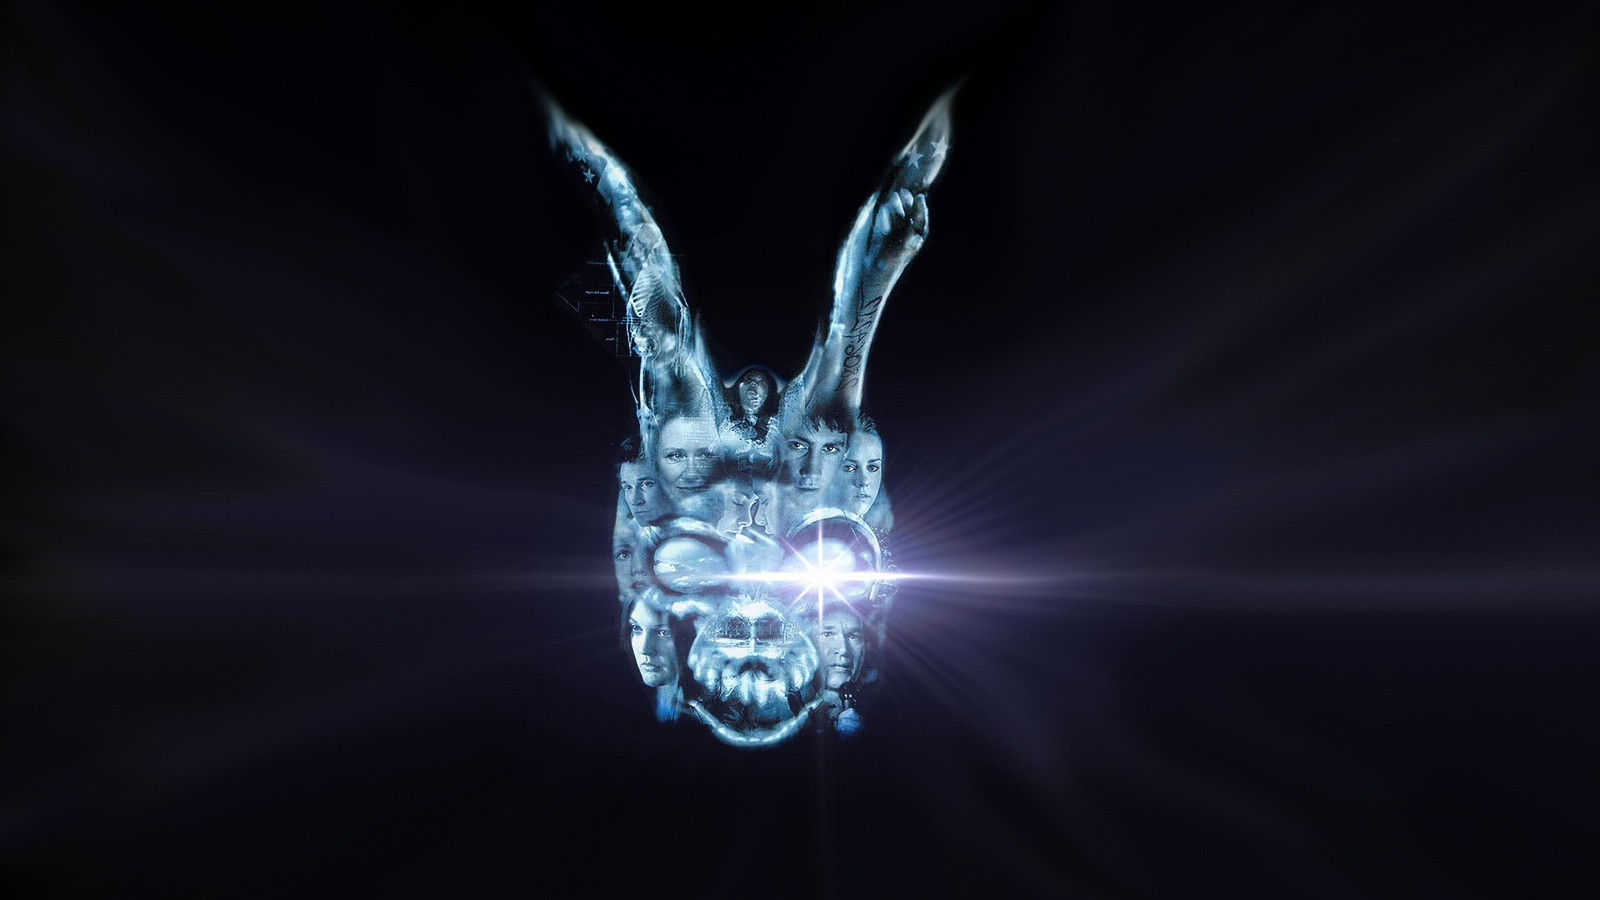 Weed Iphone 5 Wallpaper Donnie Darko Movies Rabbits Wallpapers Hd Desktop And